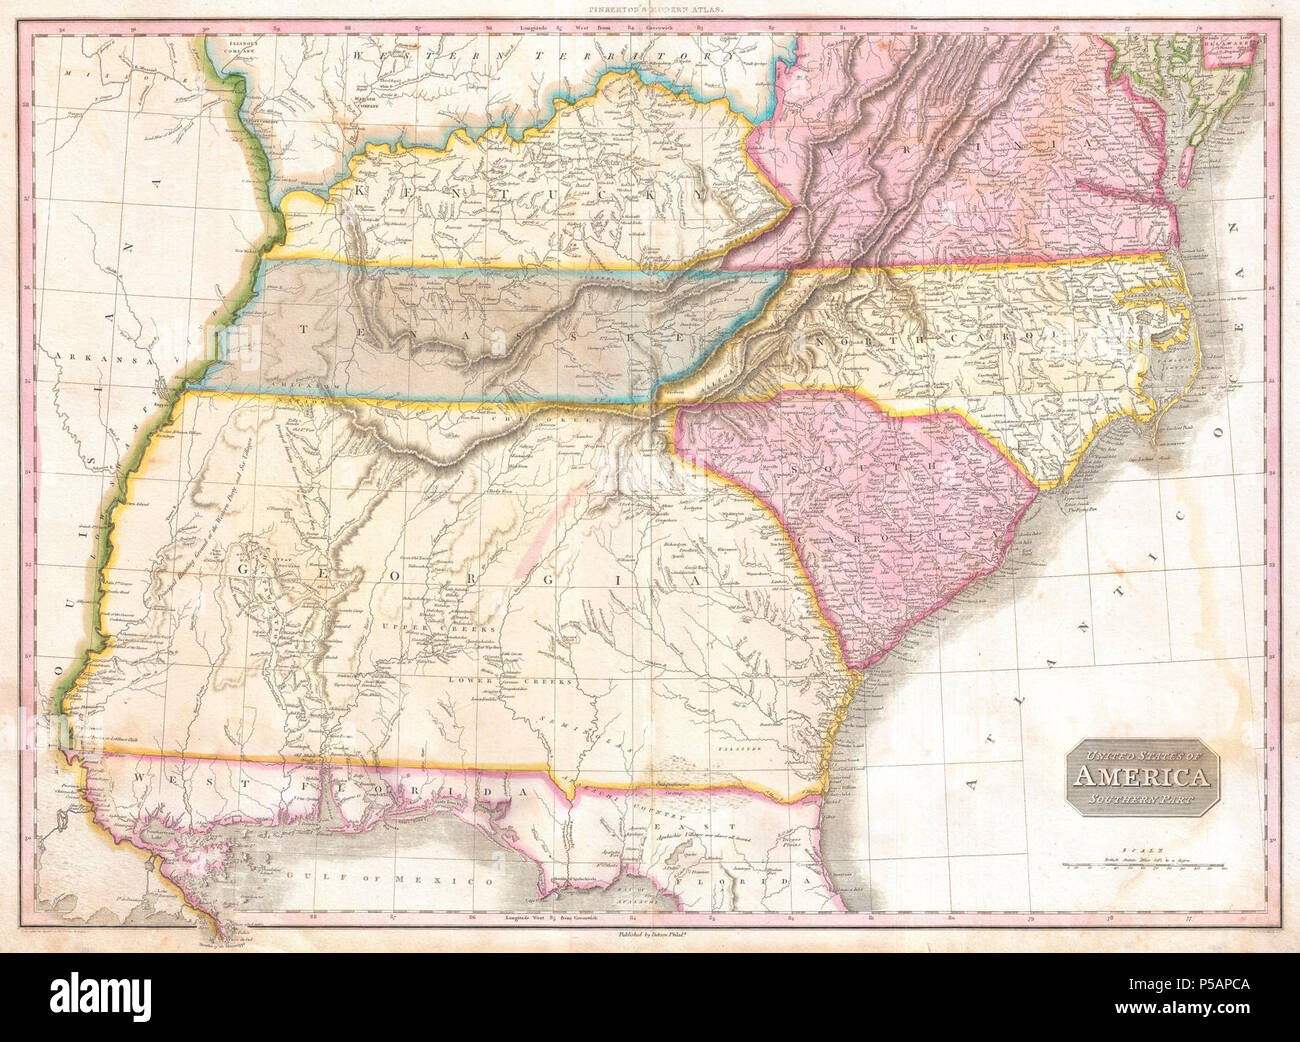 1818 Pinkerton Map of the Southeastern United States, Carolina ...